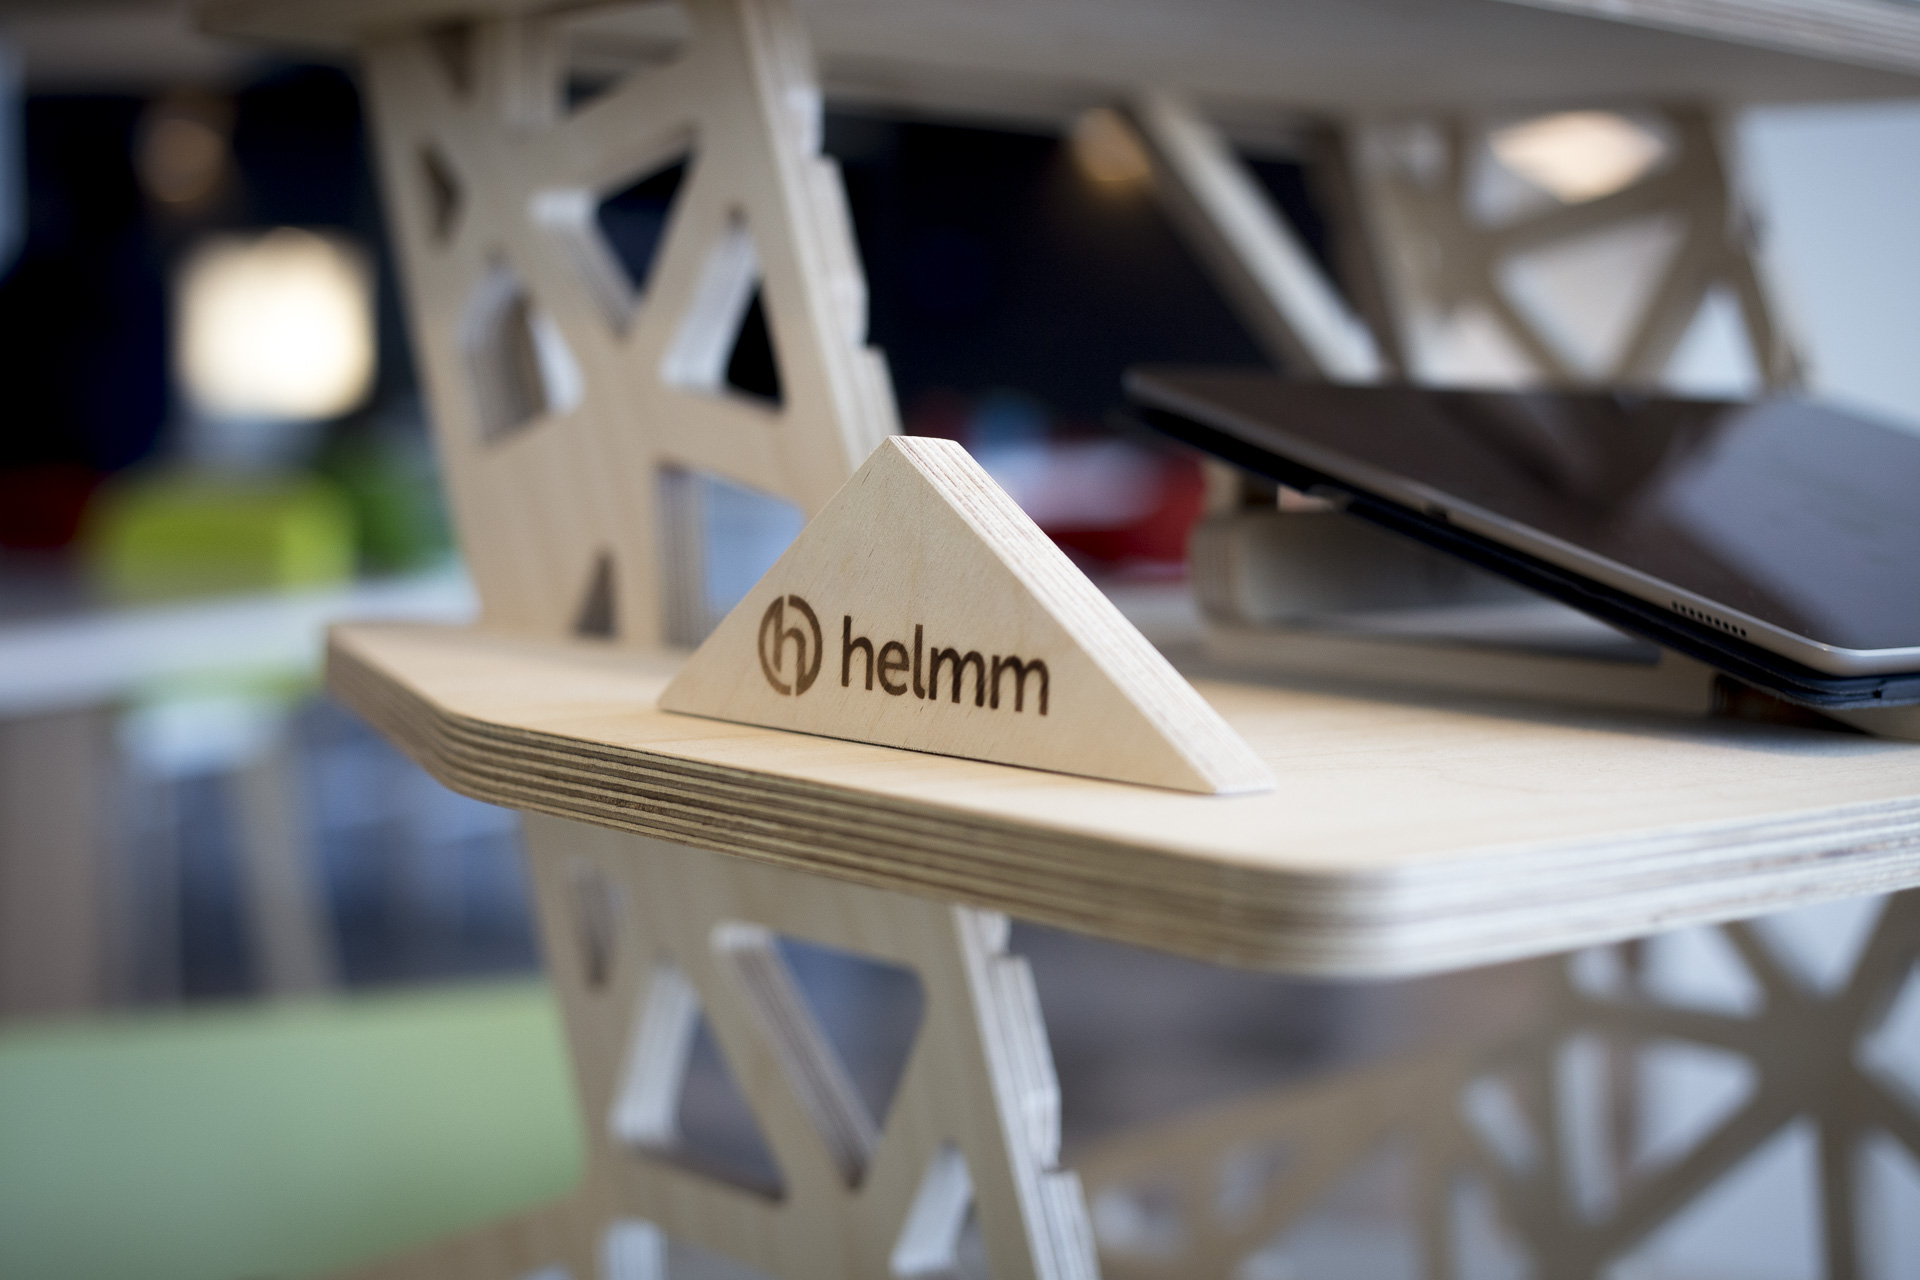 Helmm logo branded onto standing desk accessory